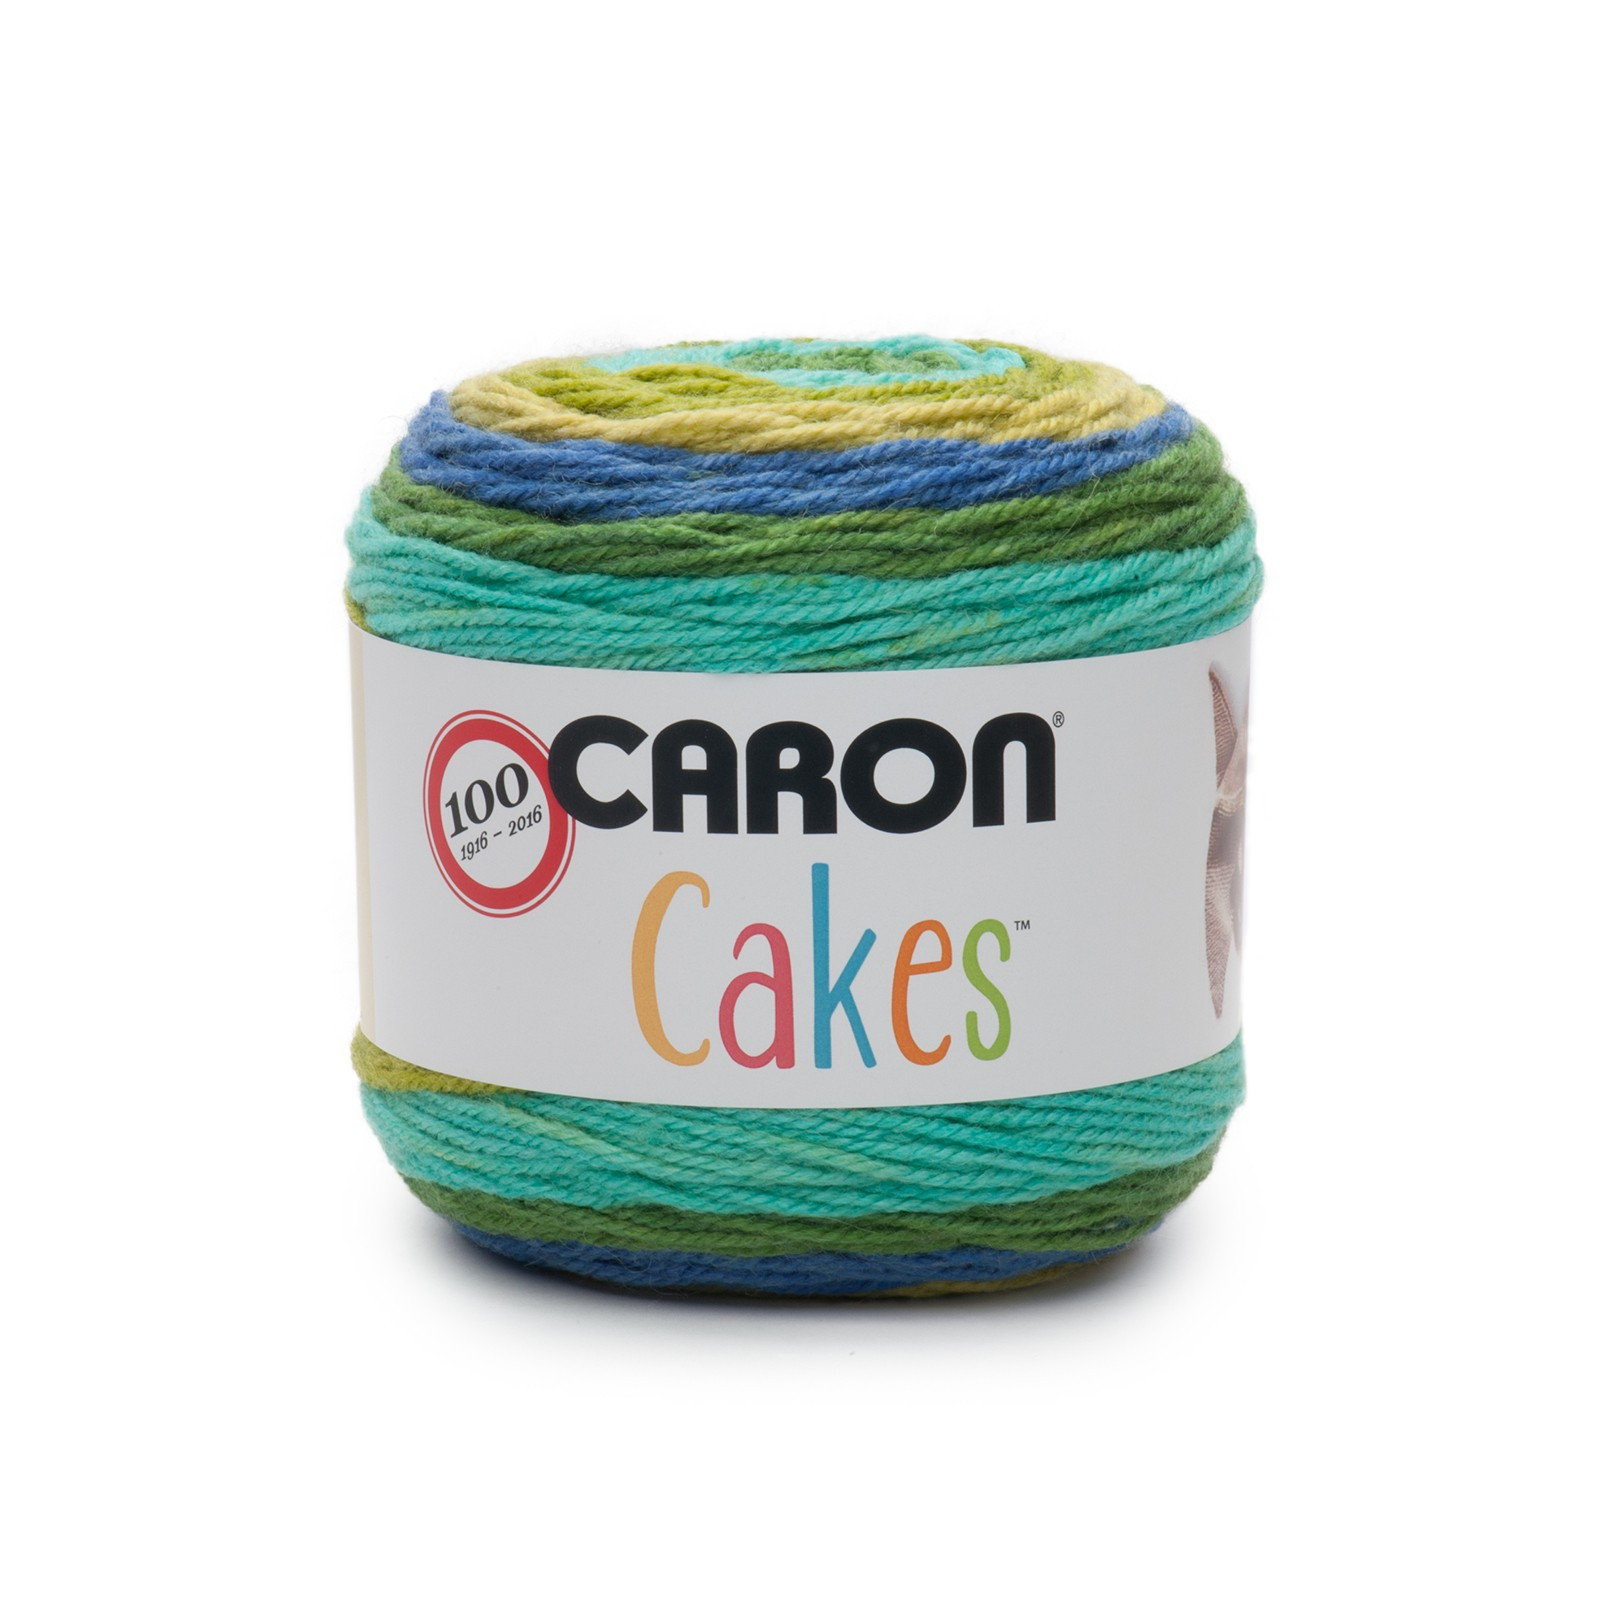 New Caron Cakes 200g Caron Tea Cakes Patterns Of Incredible 46 Pics Caron Tea Cakes Patterns